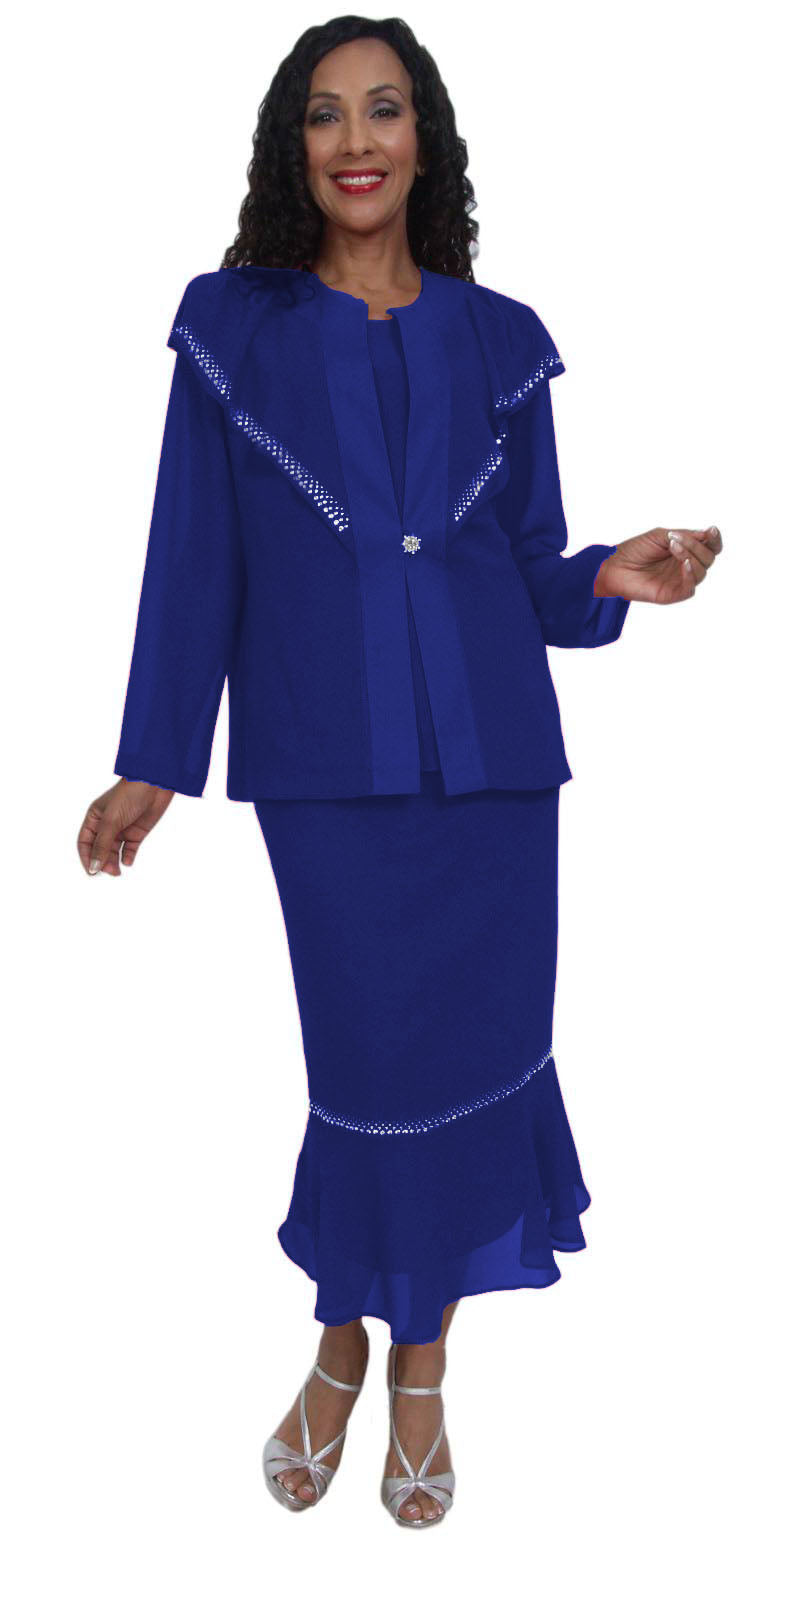 c74ed6ce4c8 Hosanna 5034 Plus Size 3 Piece Set Royal Blue Ankle Length Dress ...